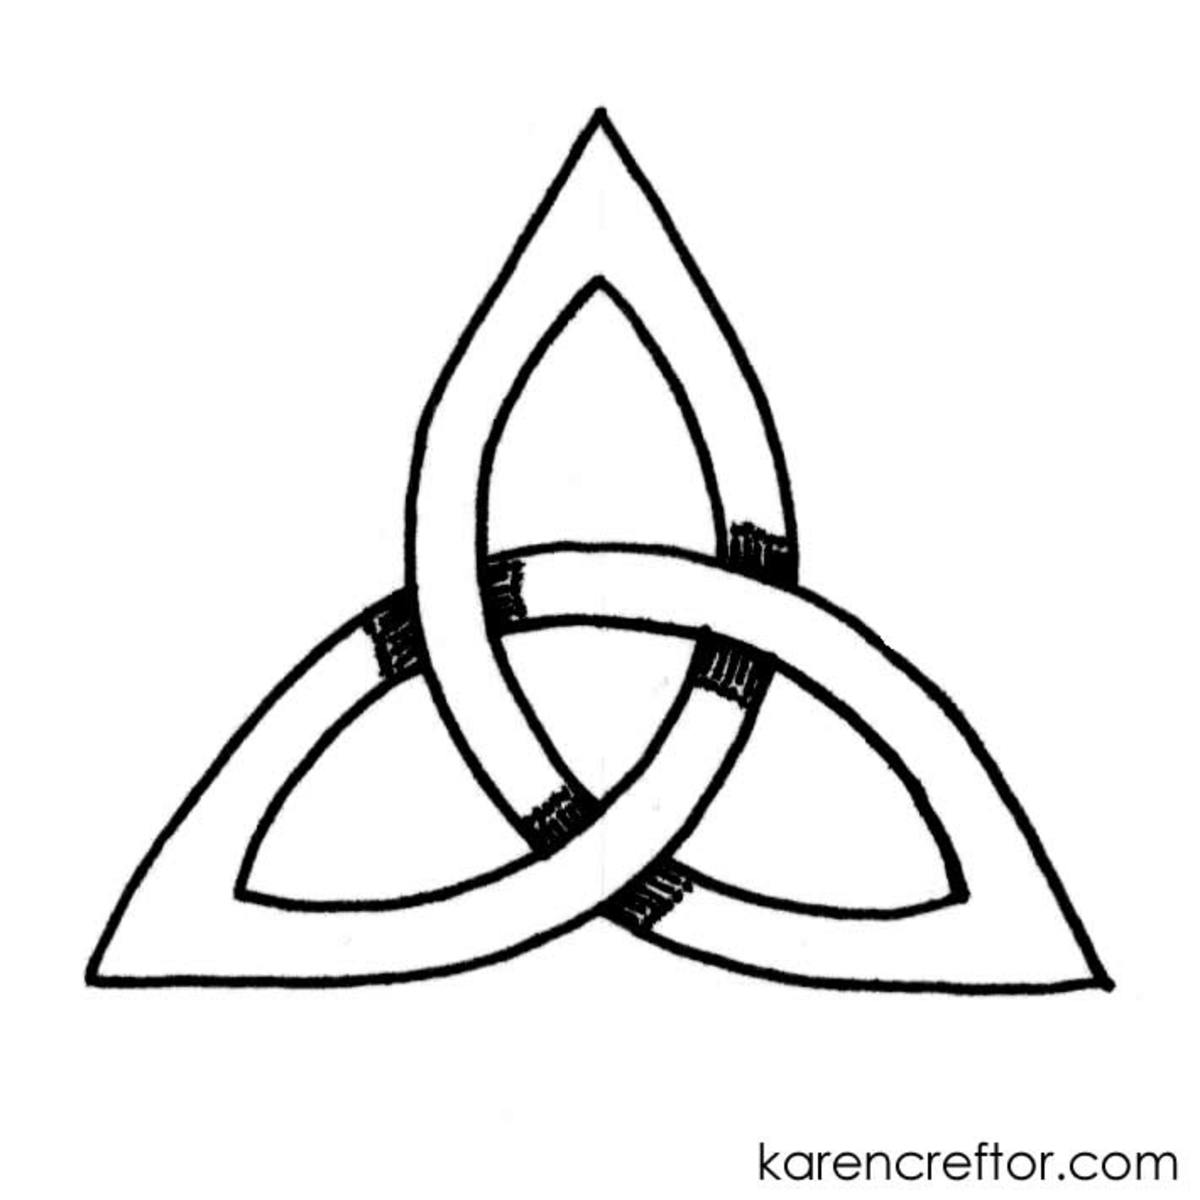 How To Draw A Triquetra With 10 Steps And A Compass Feltmagnet